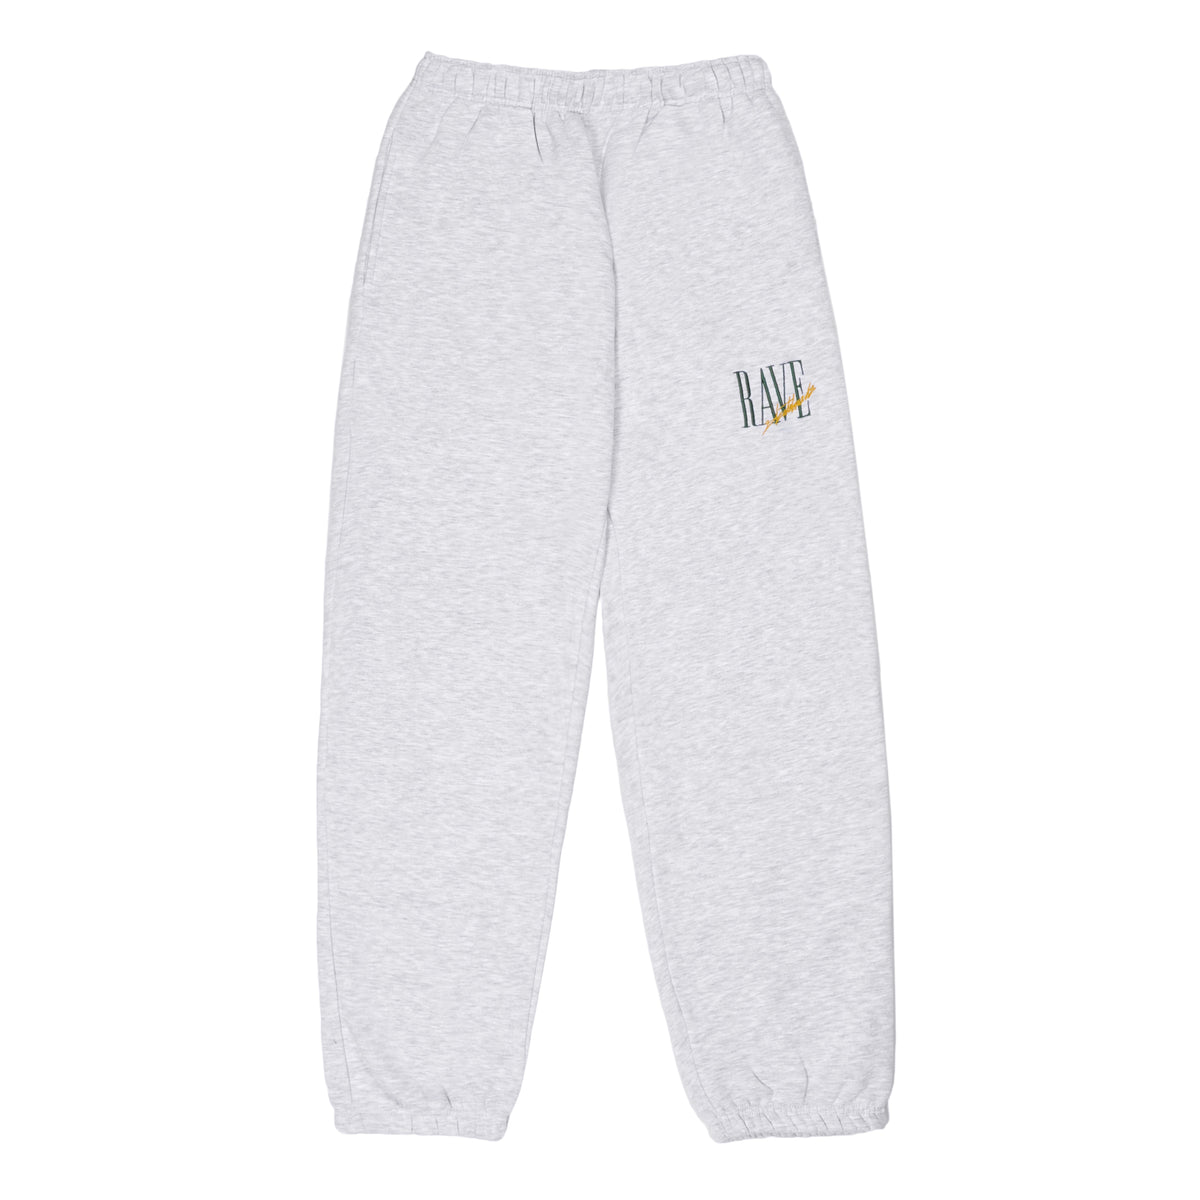 TRACY grey jog pant - RAVE skateboards